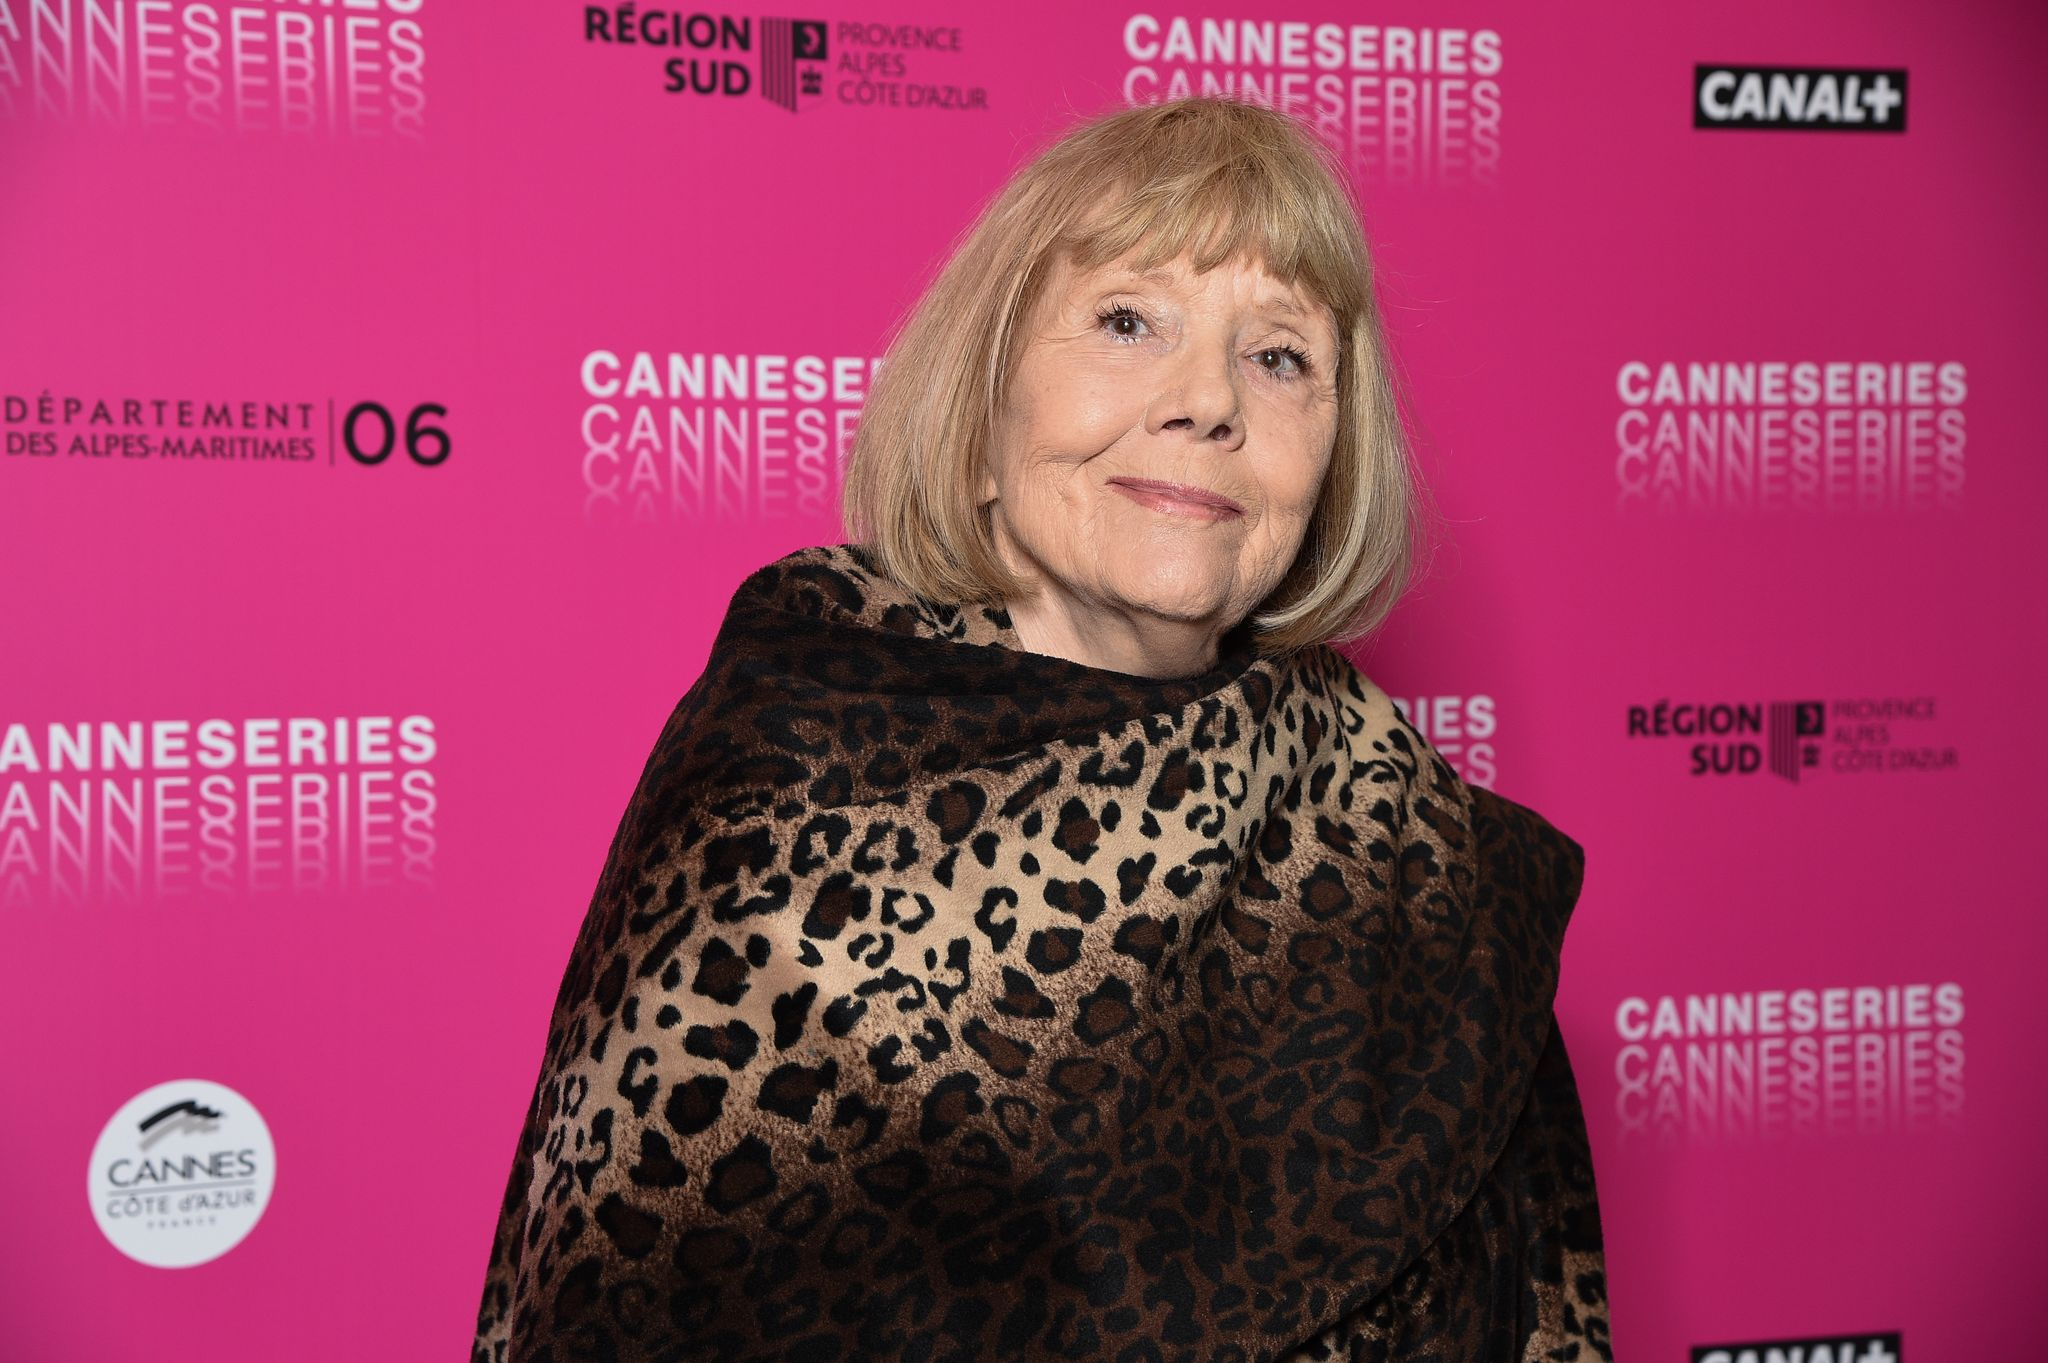 Dame Diana Rigg at the 2nd Canneseries - International Series Festival in 2019 in Cannes, France | Source: Getty Images